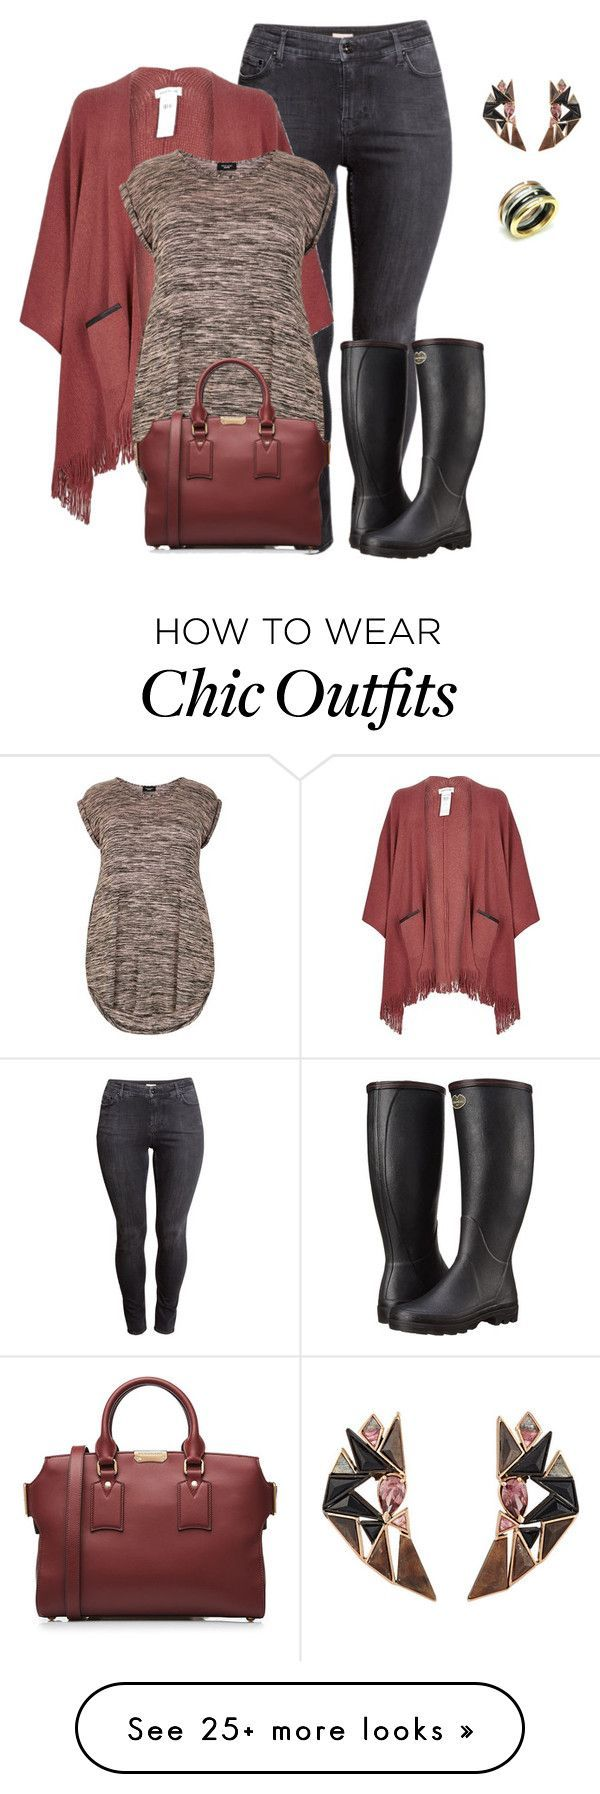 """""""plus size poncho style look2 casual chic"""" by kristie-payne on Polyvore featuring H&M, Le Chameau, River Island, JewelGlo, Nak Armstrong and Burberry"""